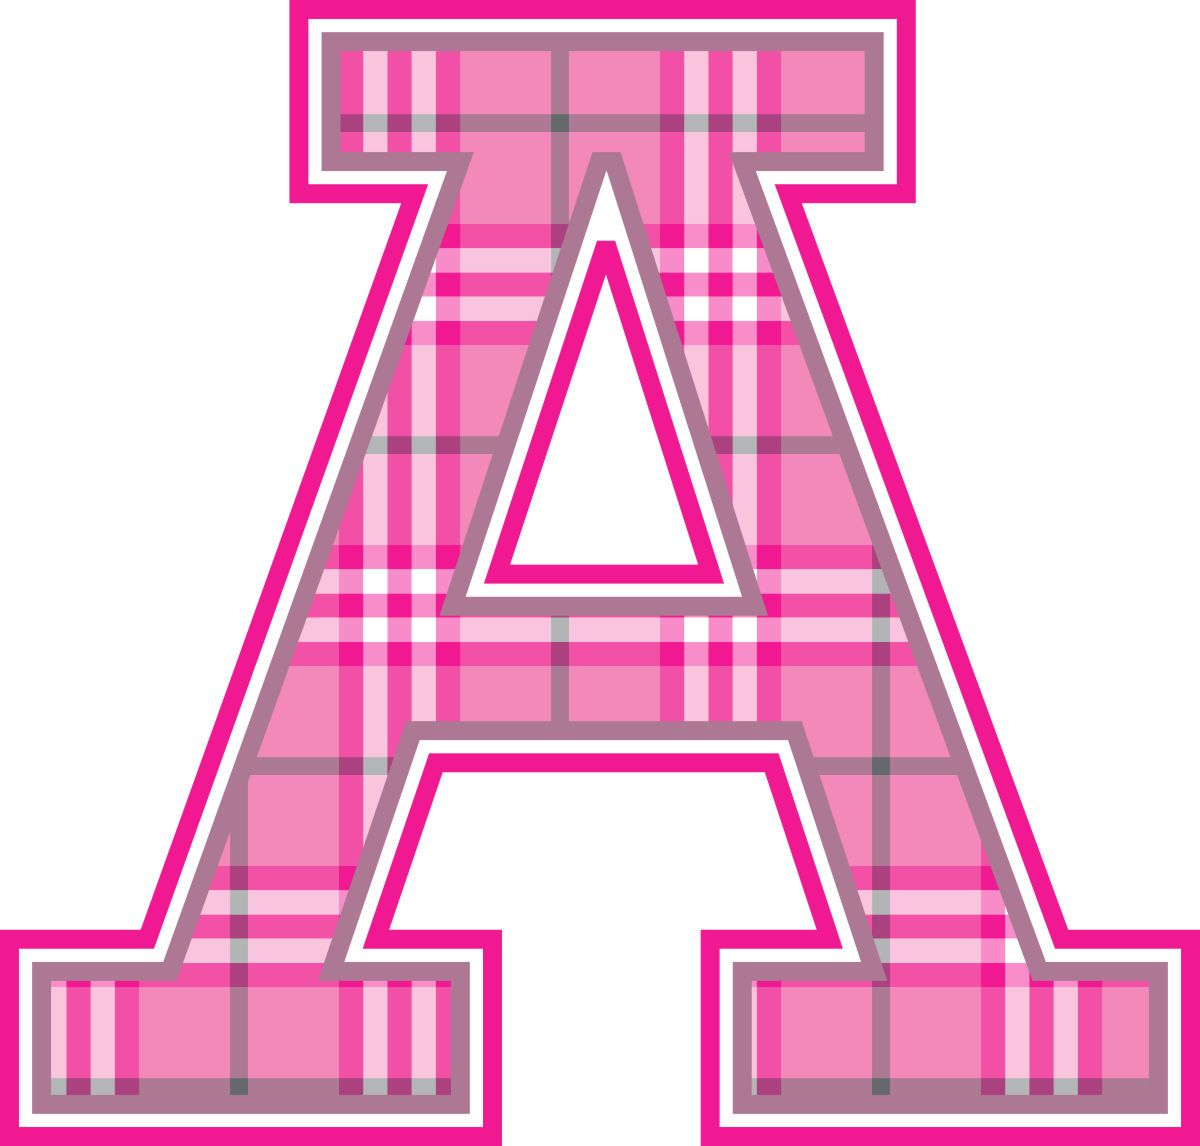 Plaid-w-Pop-Wall-Letter-A.jpg (1200×1146) | Color - SHADES OF PINK ...